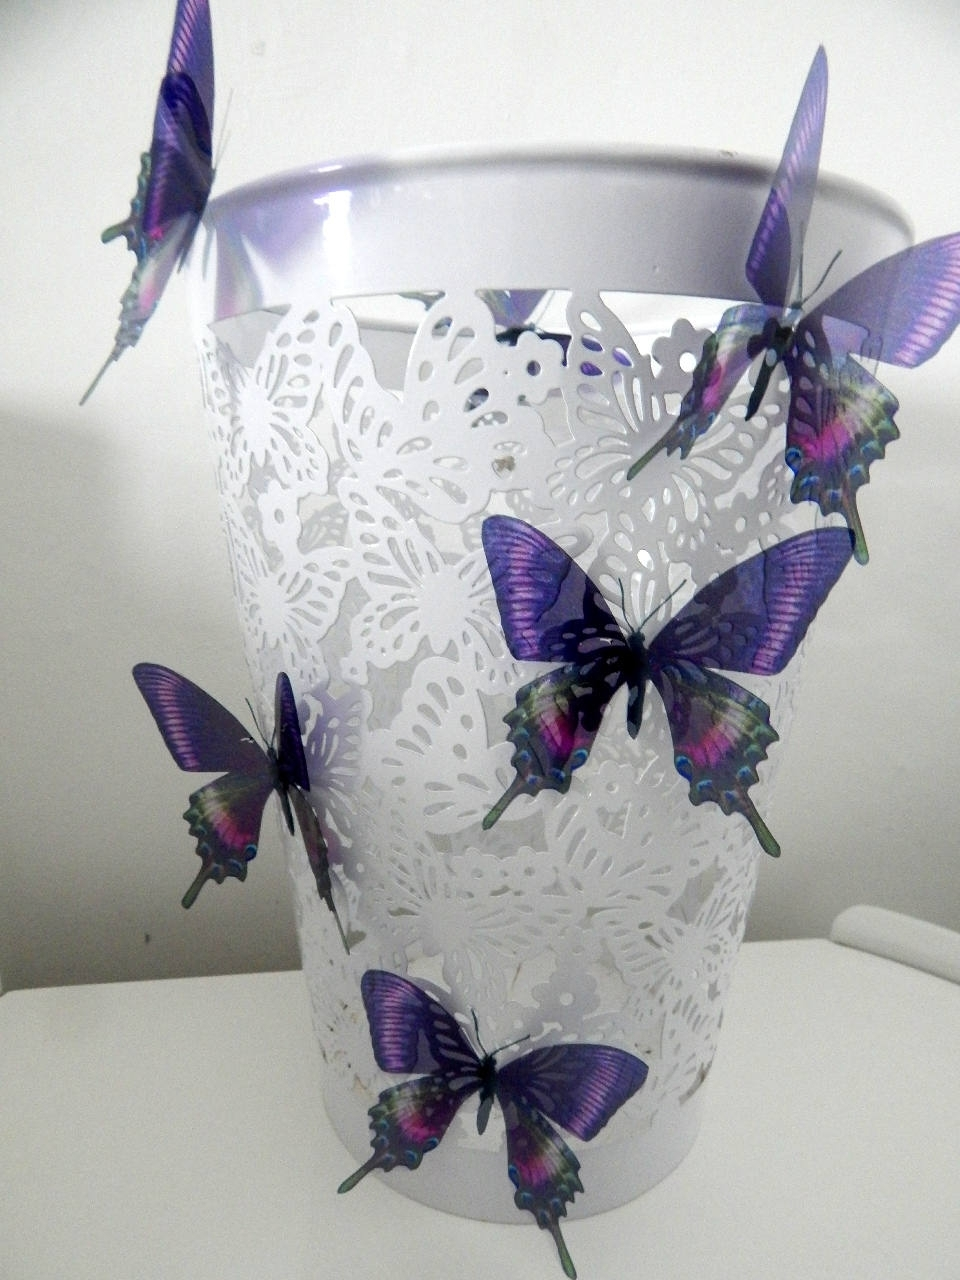 6 Purple Swallow Tail Luxury Amazing Butterflies 3D Butterfly Wall Within Most Recent 3D Removable Butterfly Wall Art Stickers (Gallery 13 of 15)